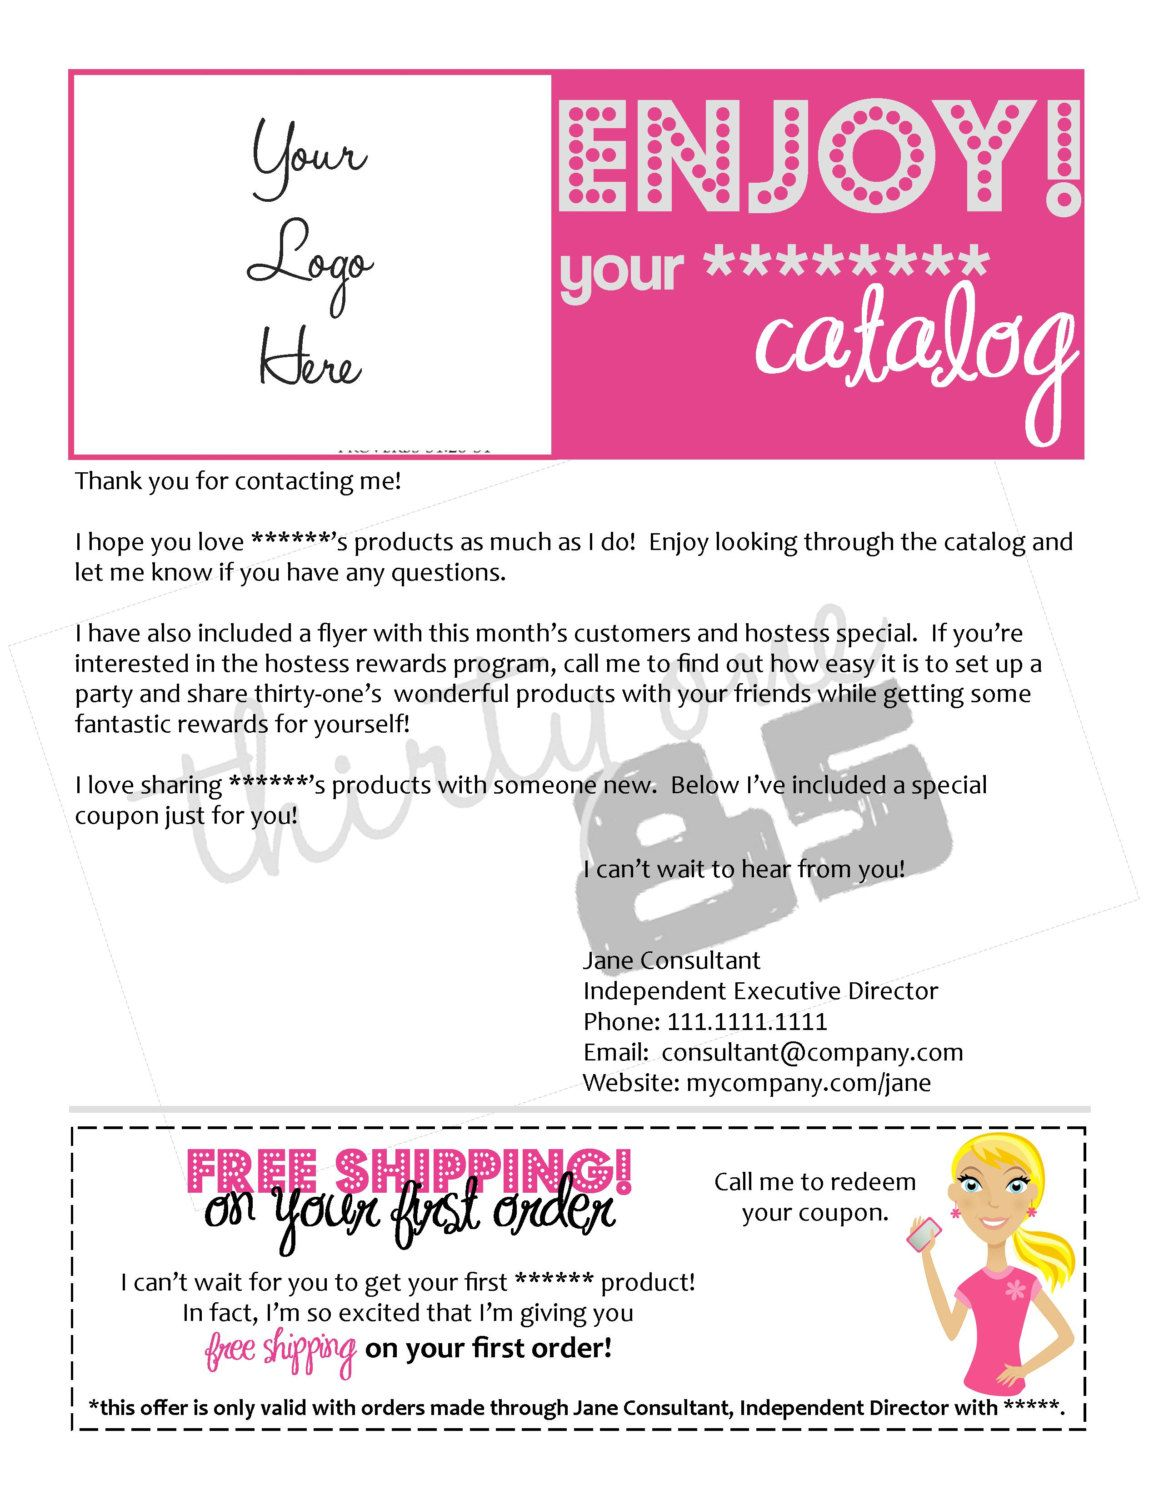 direct s independent consultant catalog letter via direct s independent consultant catalog letter 15 00 via